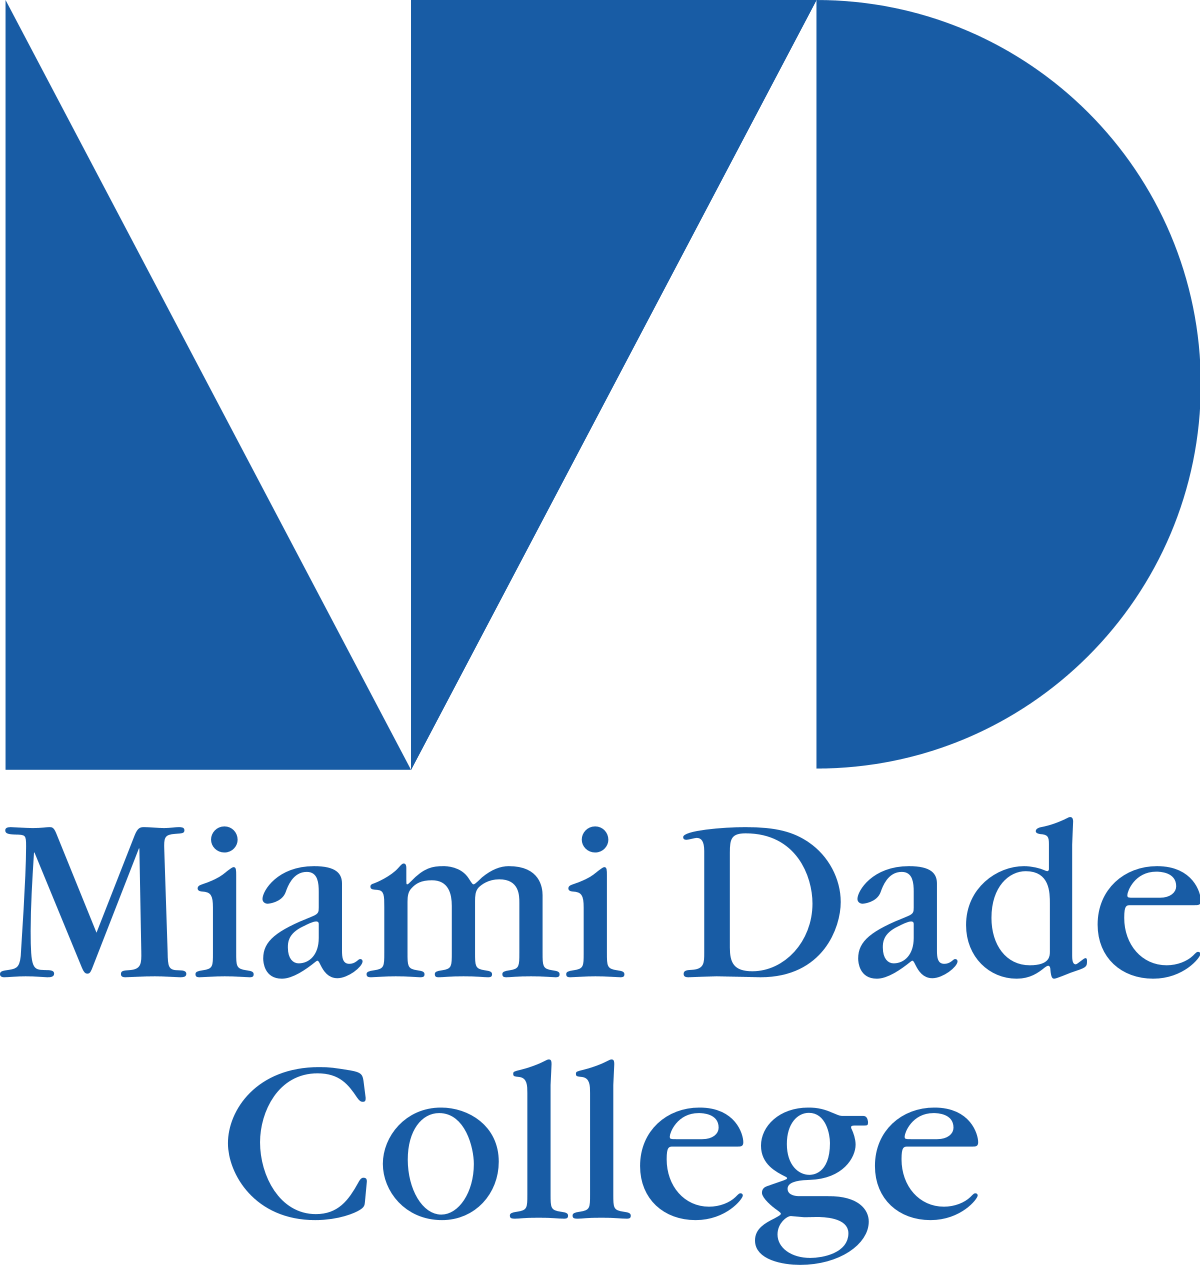 Miami Dade College – Wikipedia Throughout First Day Of Class Miami Dade College Fall 2020